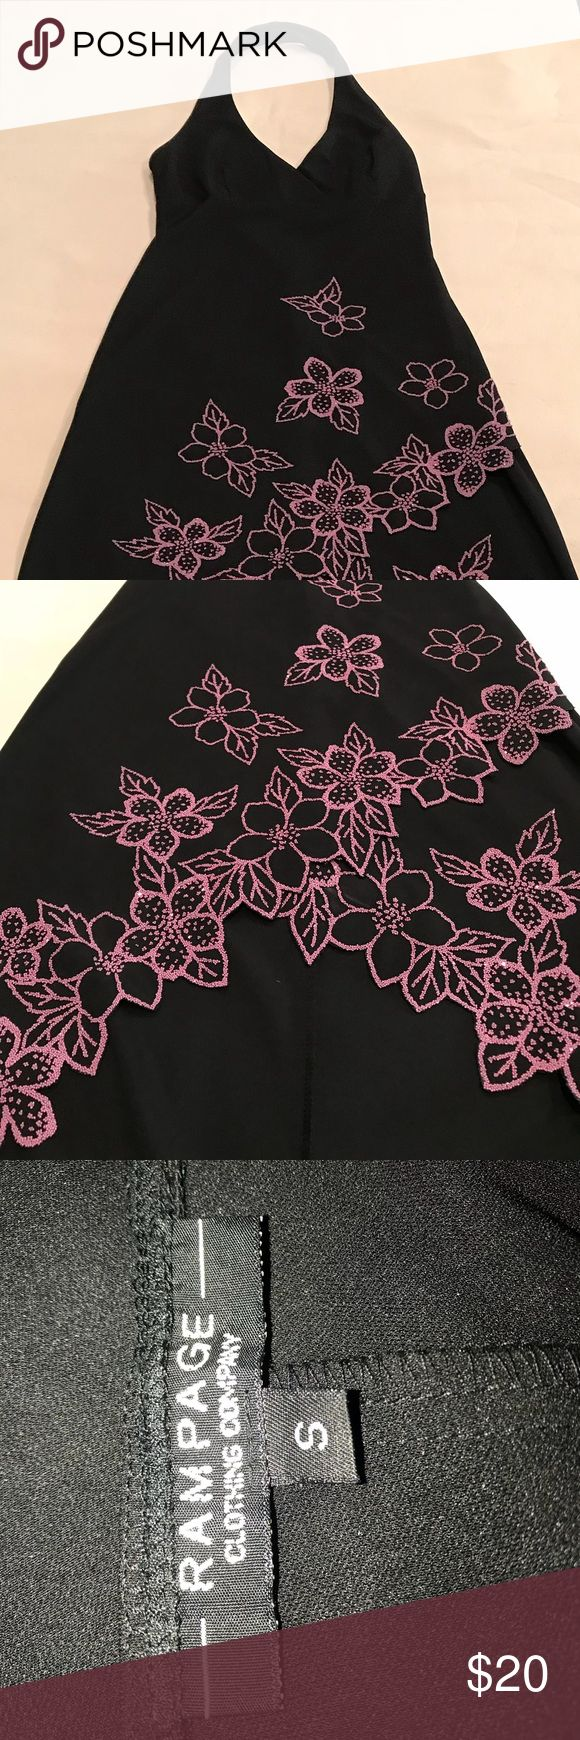 Rampage Dress, Small, Black with pink, EUC Rampage Dress, Small, Black with pink tropical flowers, EUC (worn twice, a few easily removable deodorant spots from just now modeling for pic 😕), halter top, high-low bottom style. Fun dress for cruise or beach party. Rampage Dresses High Low